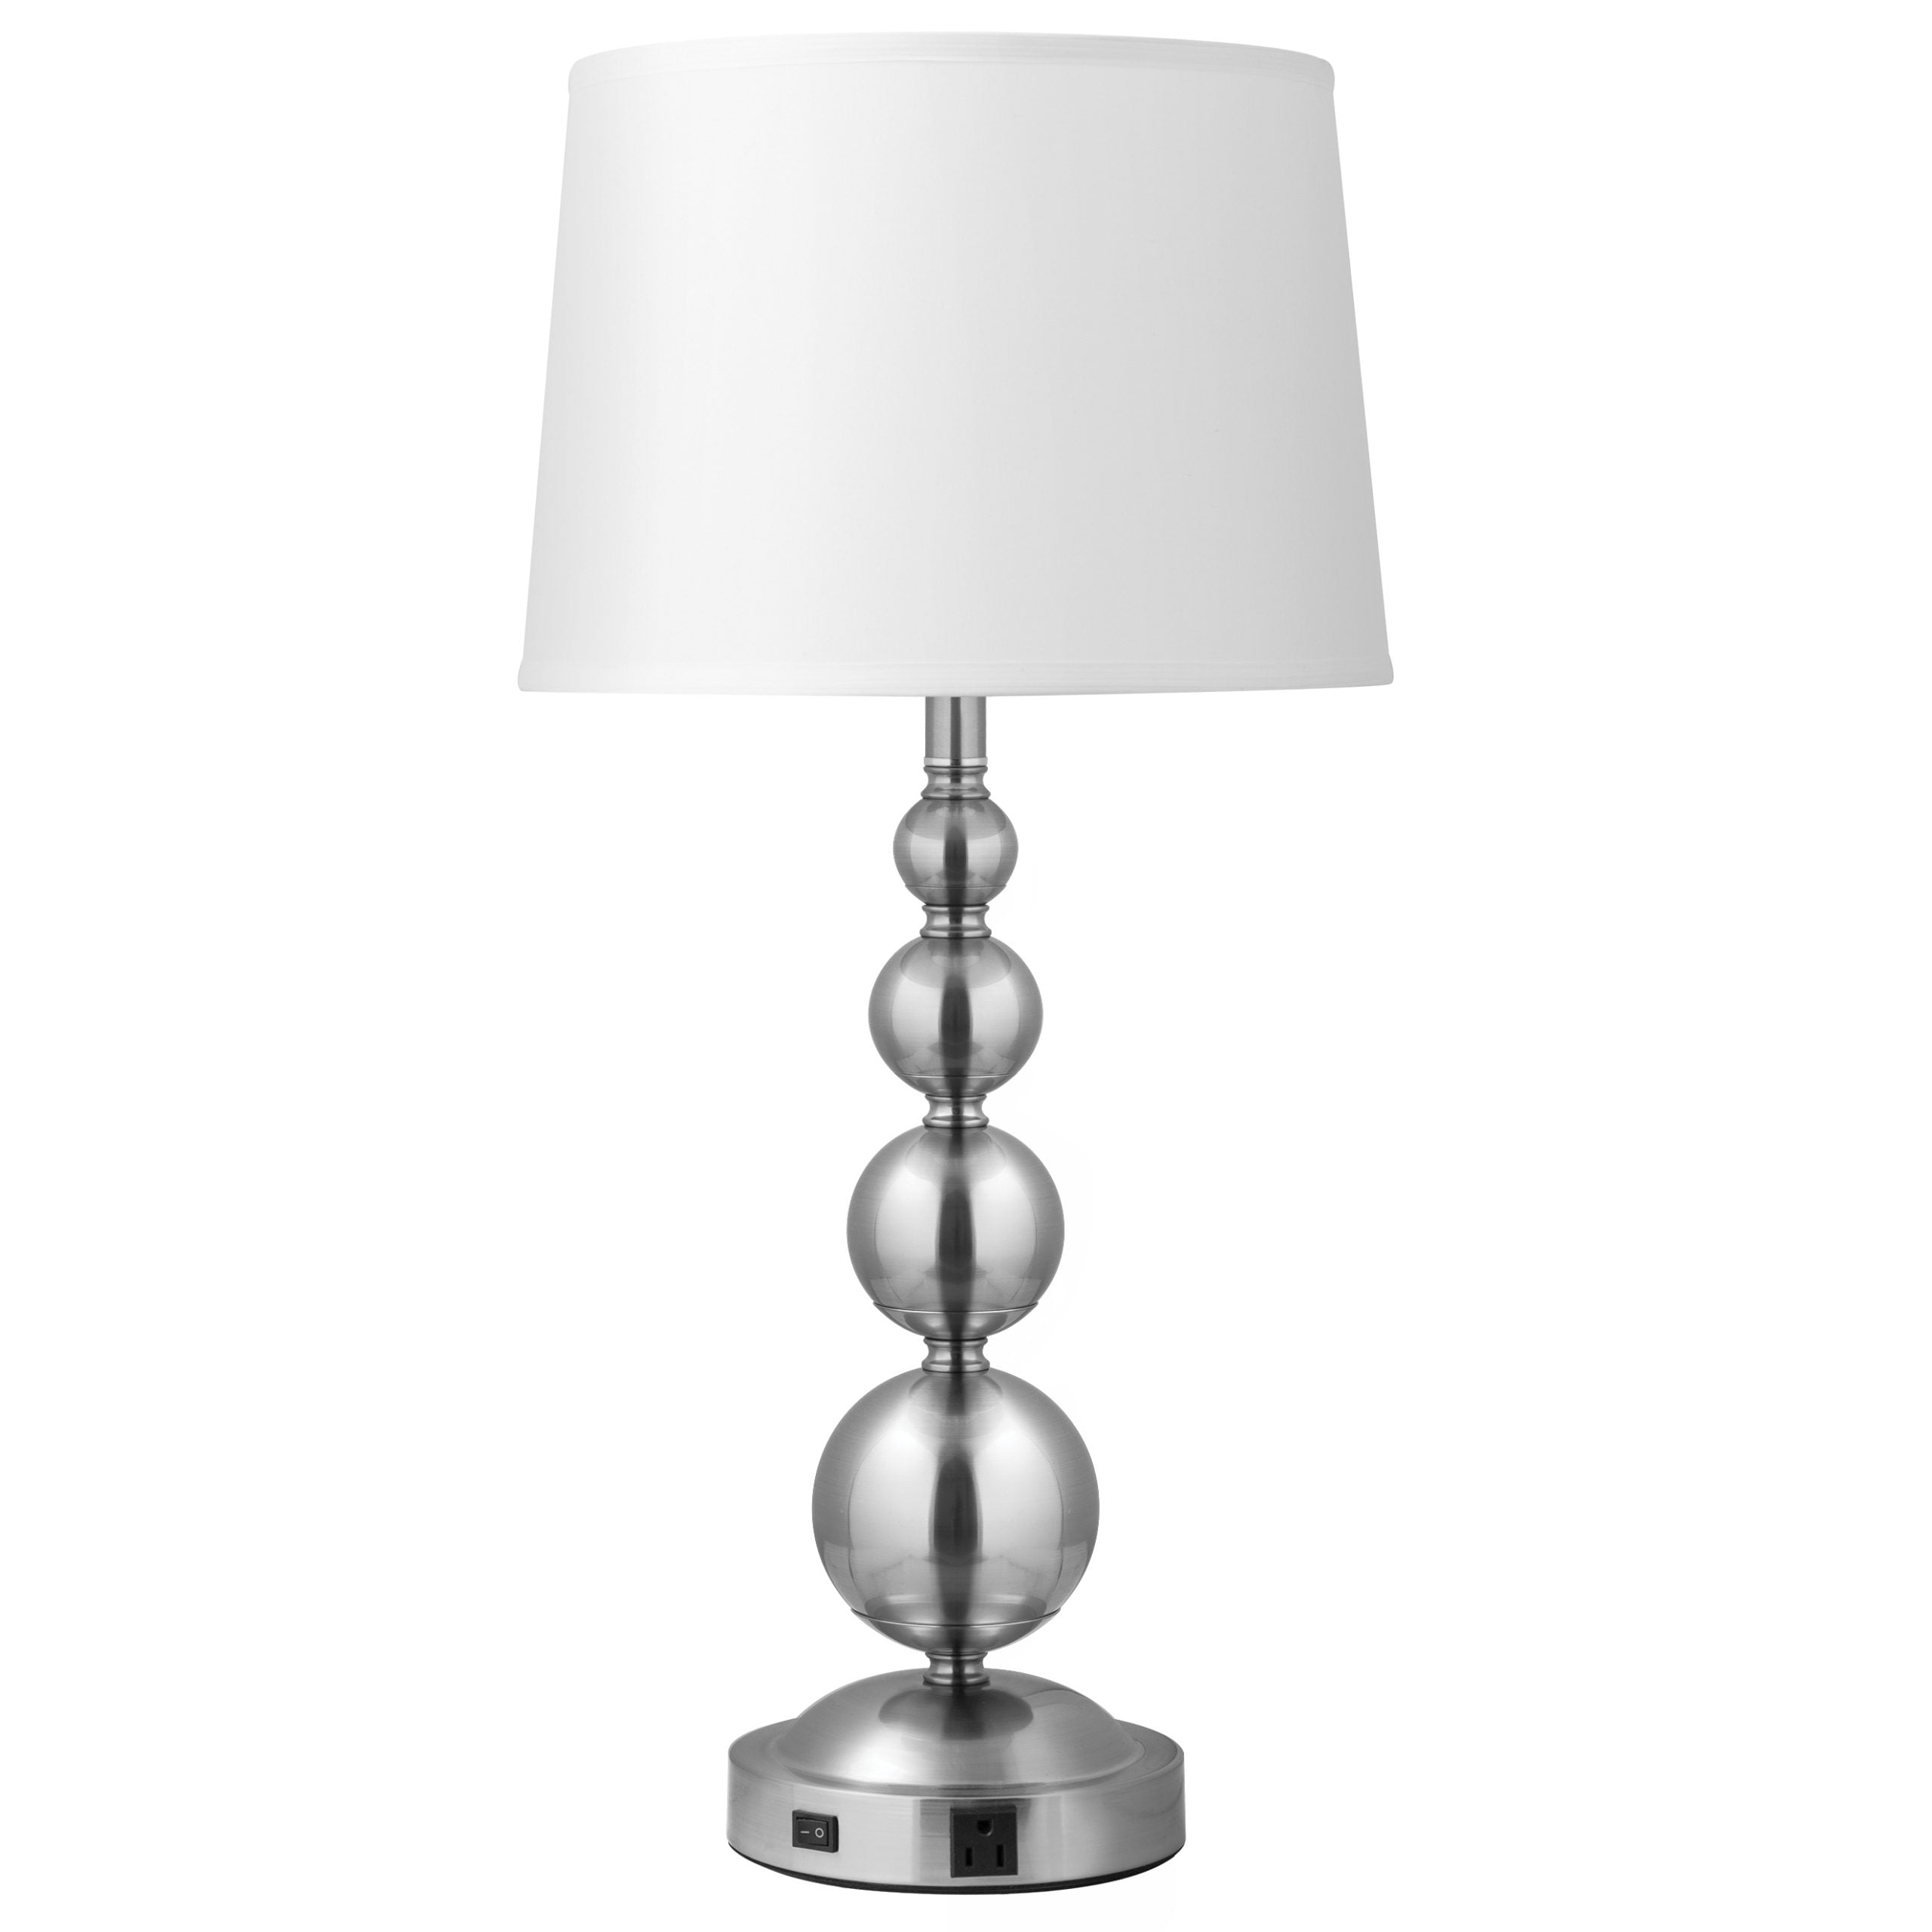 Lush Vert Single Table Lamp with 1 Outlet